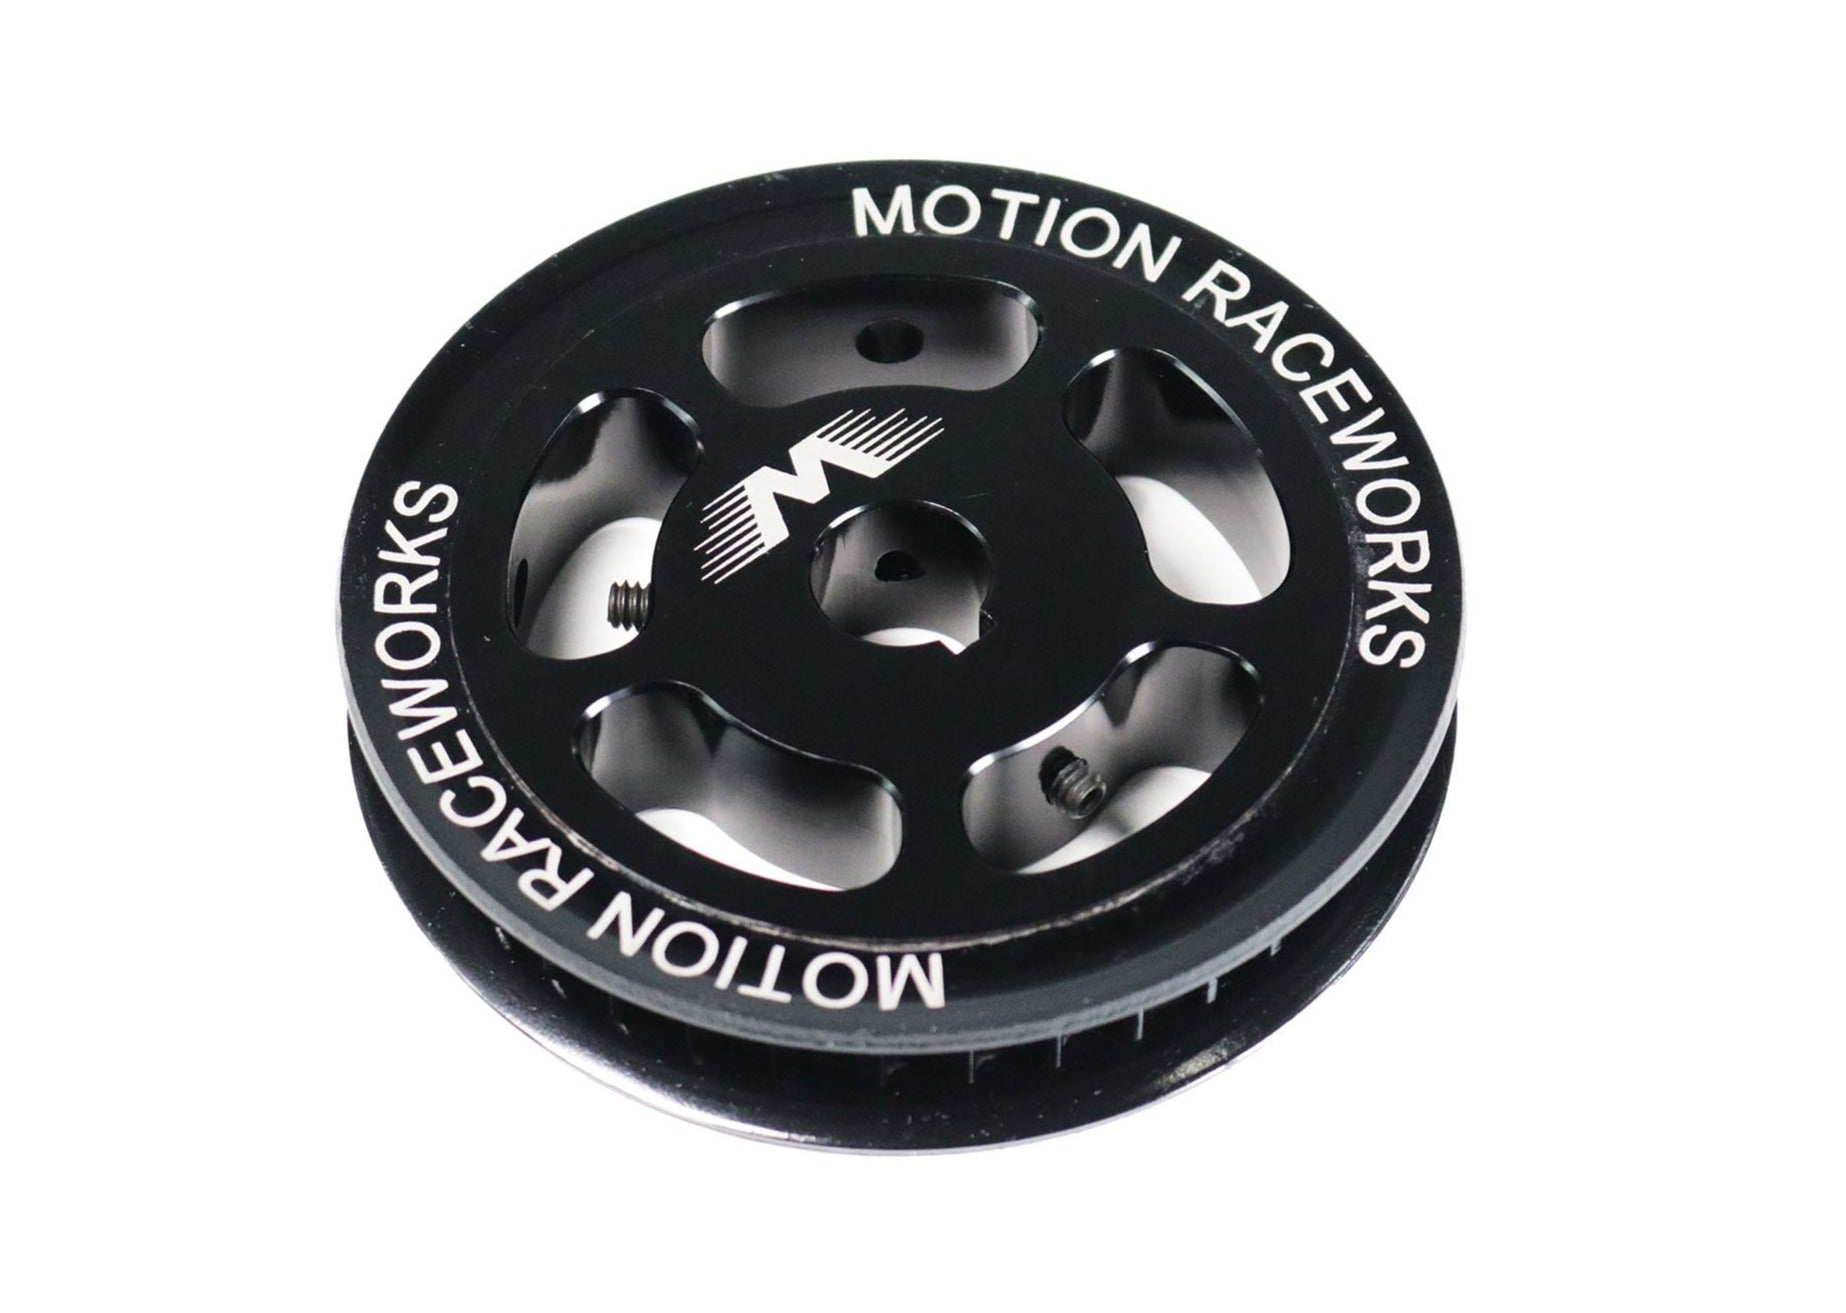 36 tooth HTD pulley with for 5/8 drive keyed shaft-Motion Raceworks-Motion Raceworks